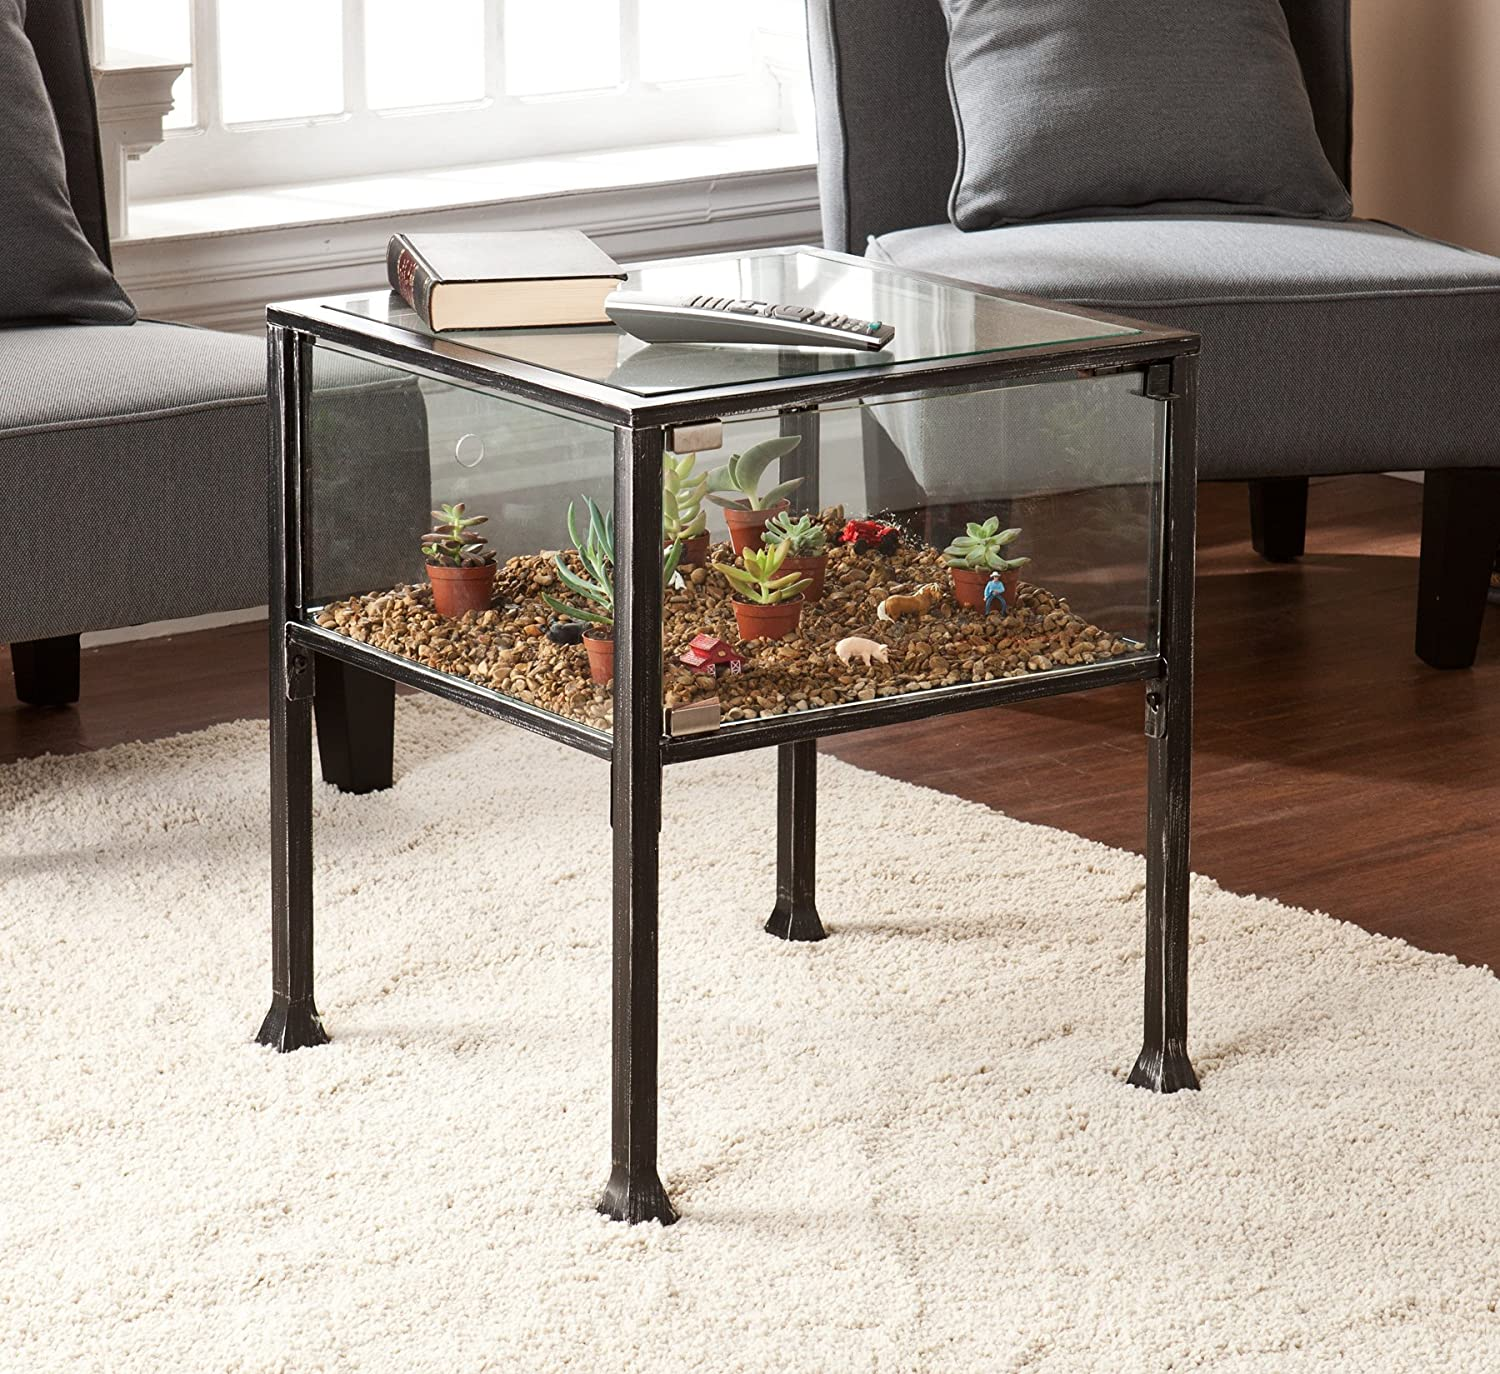 Amazon.com: Terrarium Display End Table with Silver Distressing in Black:  Kitchen & Dining - Amazon.com: Terrarium Display End Table With Silver Distressing In